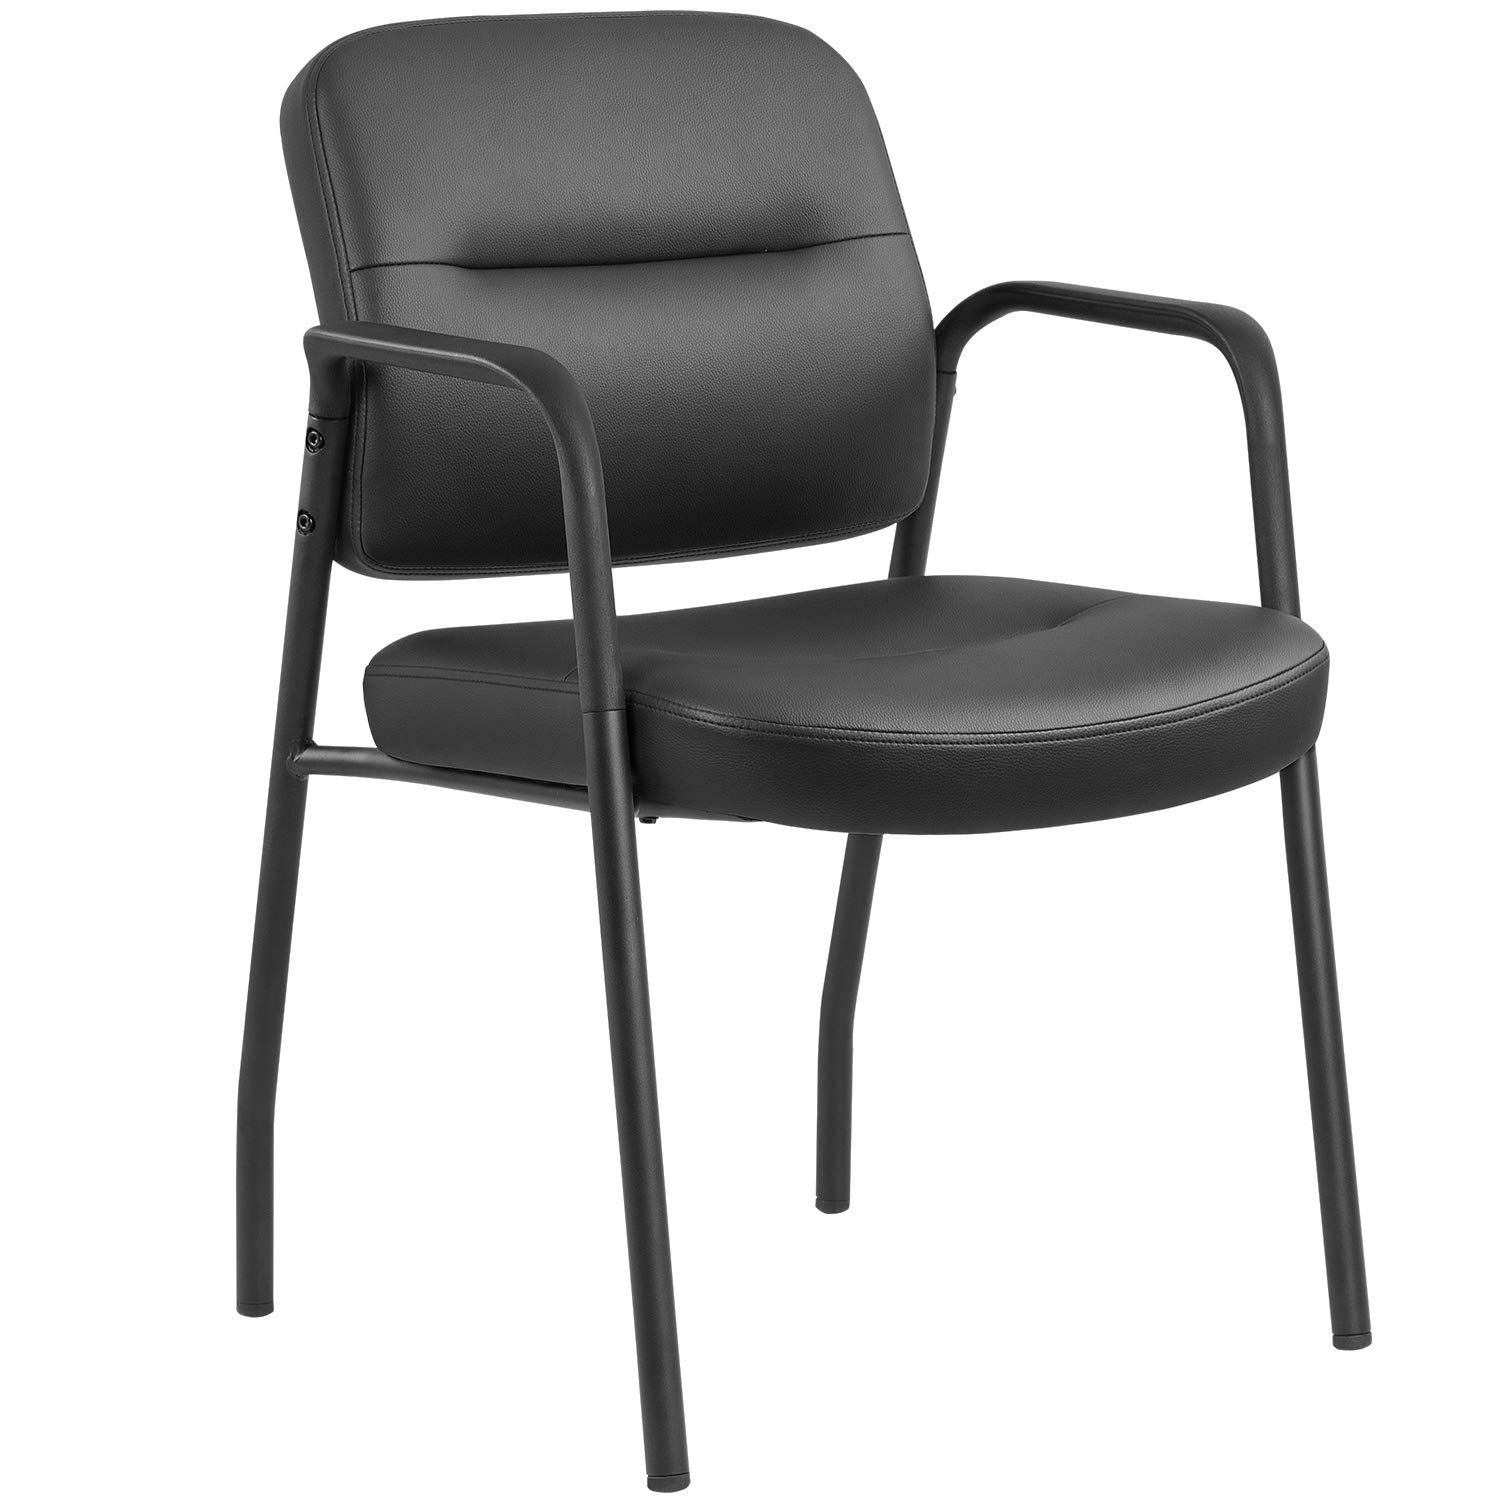 JUMMICO Office Guest Chair Leather Executive Side Chair Reception Chair with Frame Finish Ergonomic Lumbar Support (Black) by JUMMICO